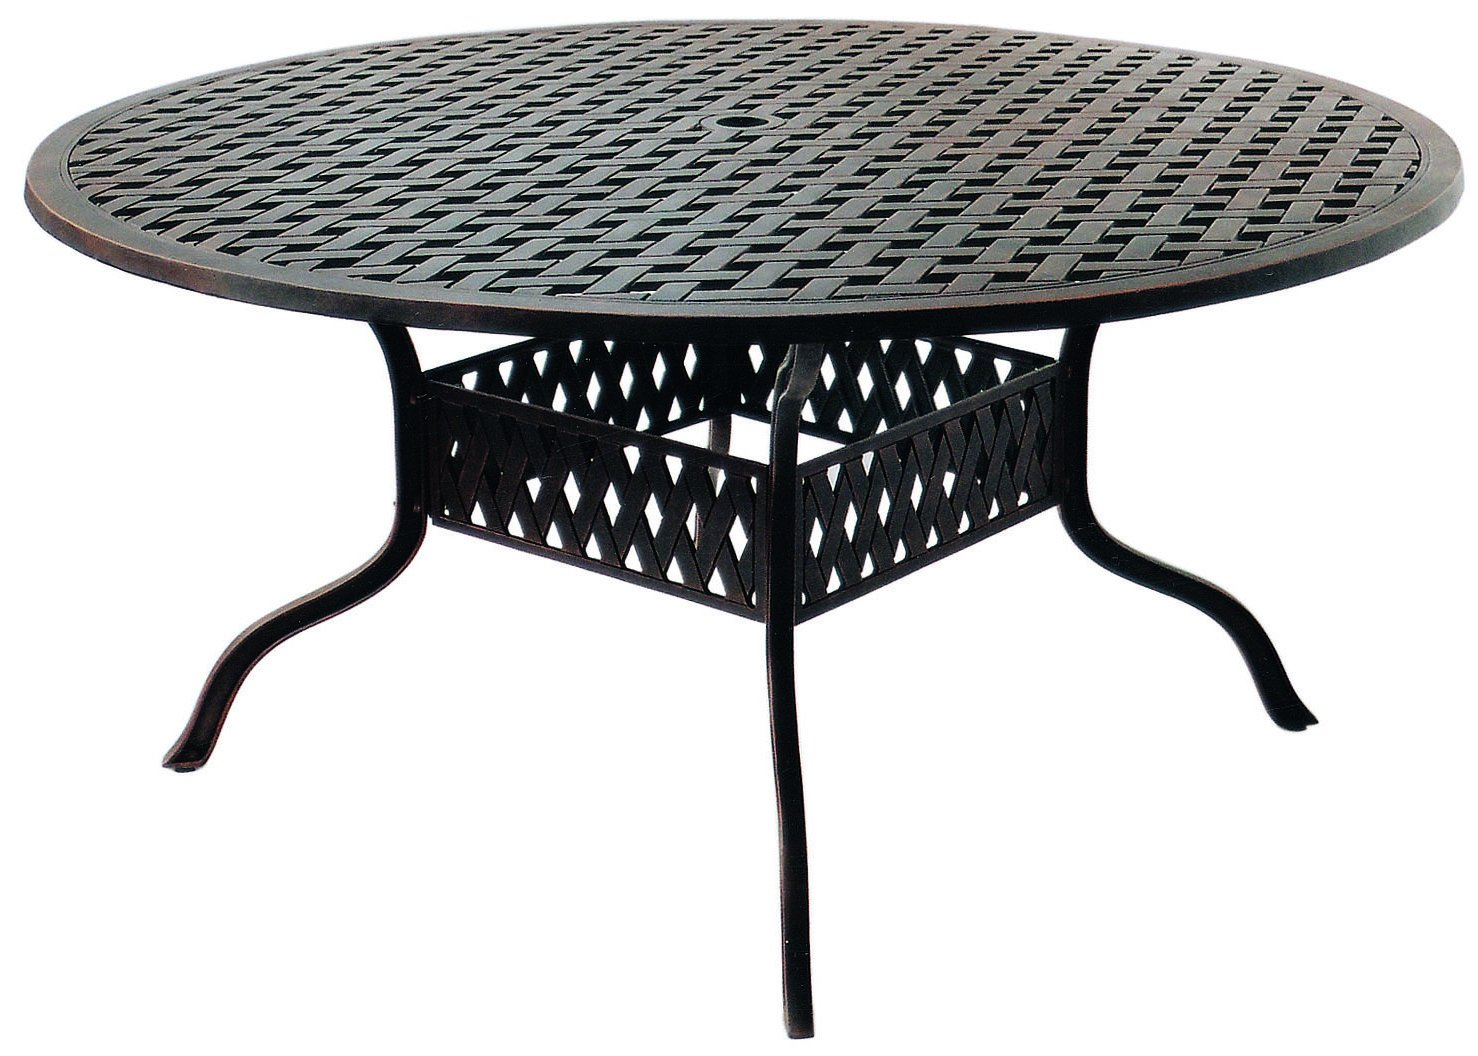 Darlee A/DL30-D Series 30 Dining Table, 60'' Round